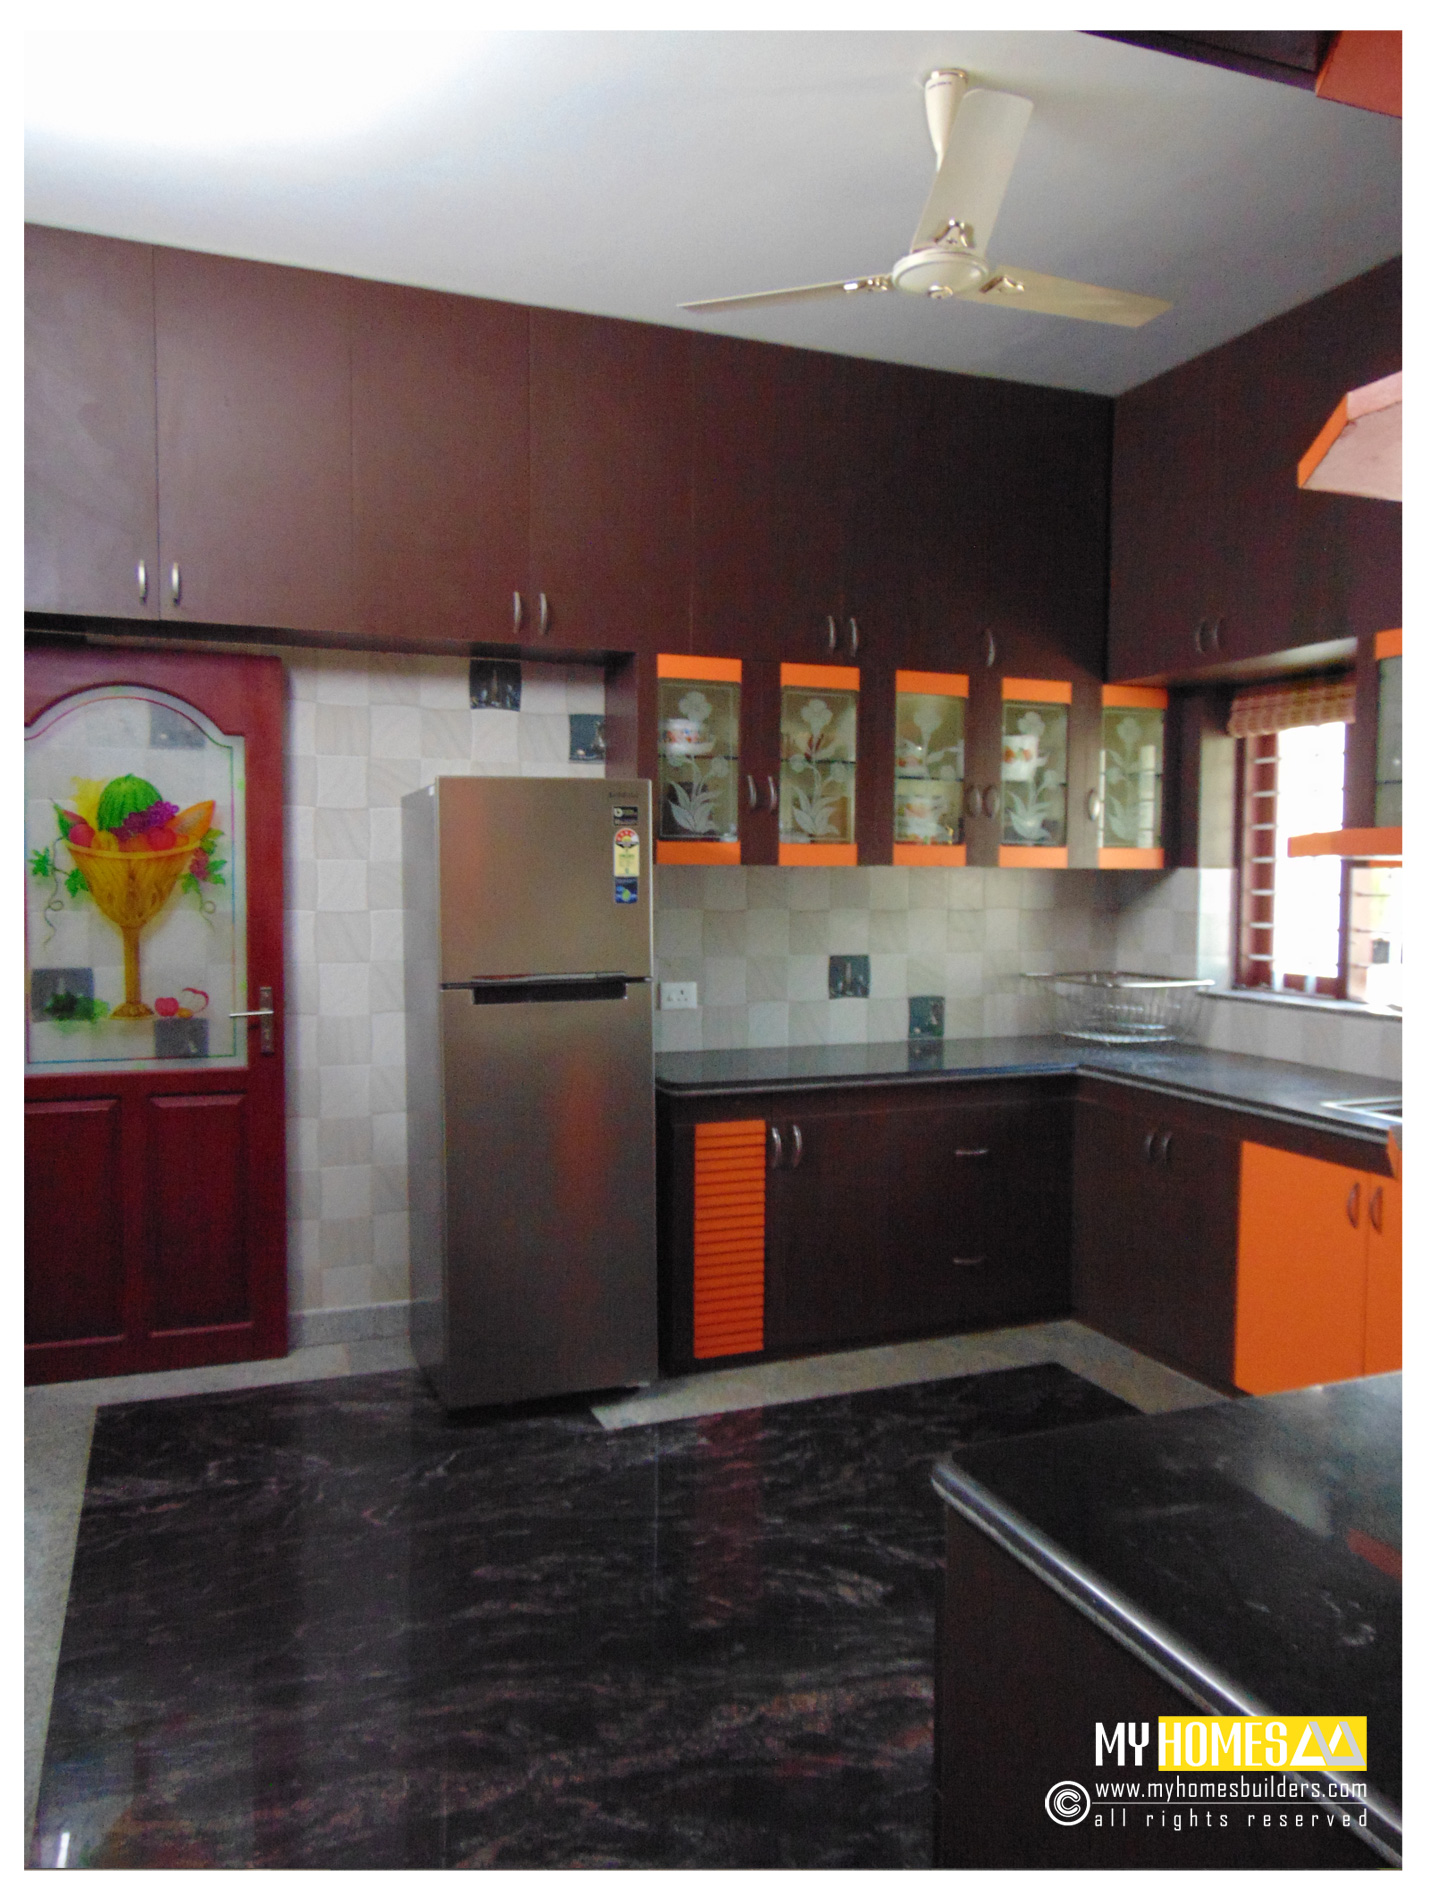 Kerala Kitchen Designs Idea In Modular Style For House In For Kerala Style  Kitchen Interior Designs ...